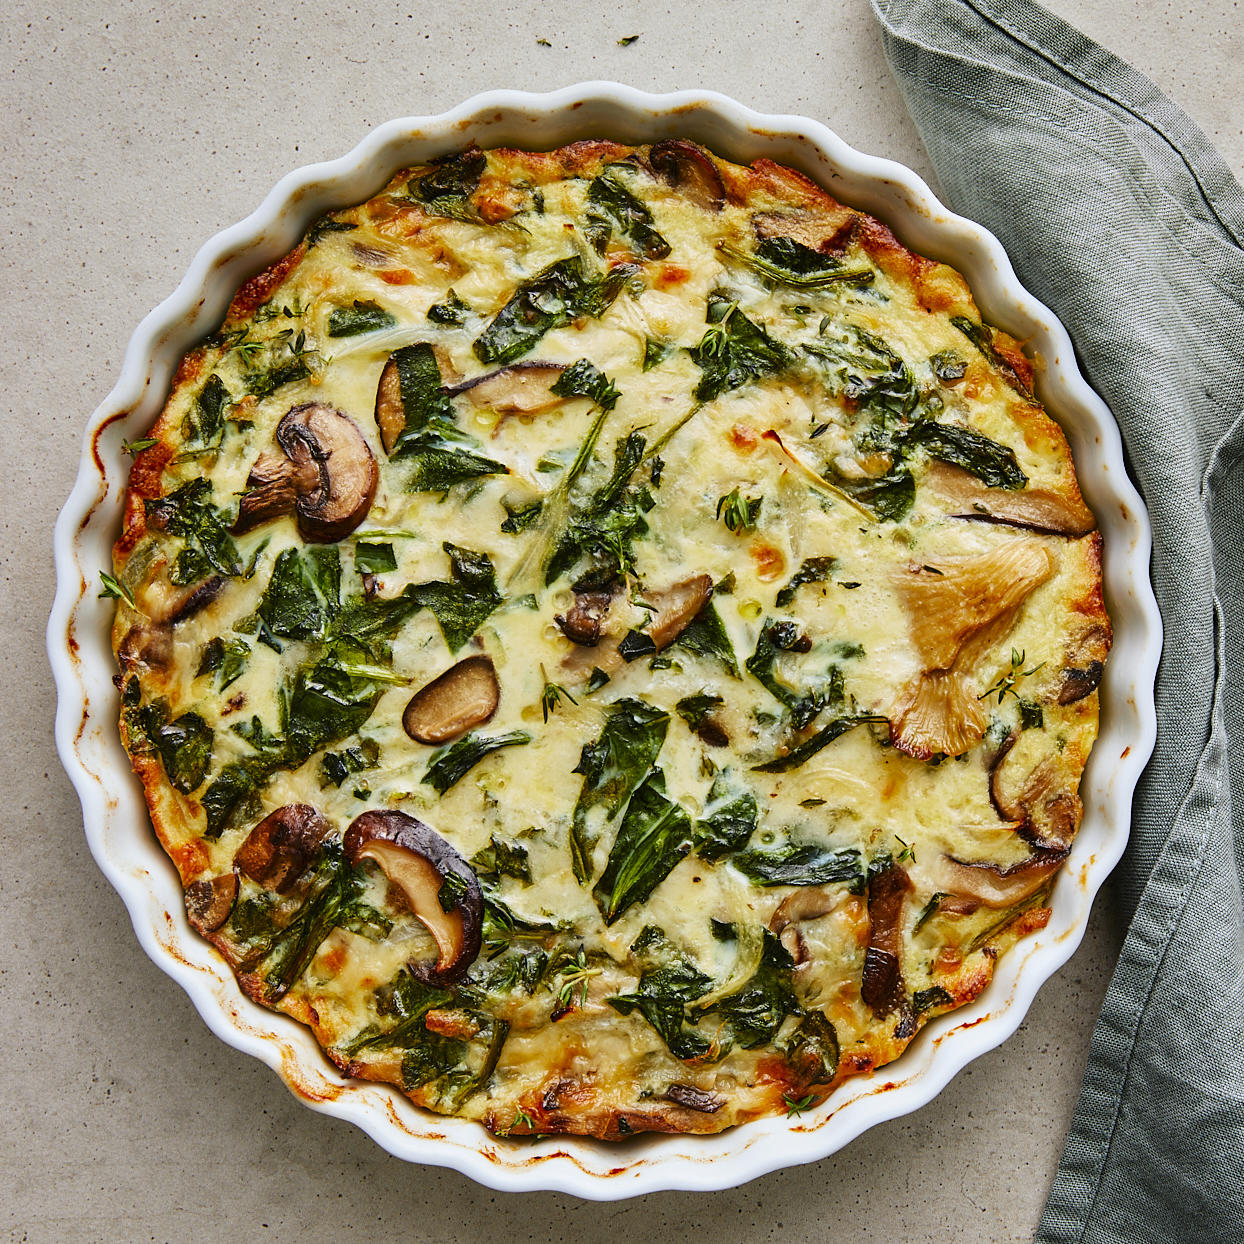 This healthy vegetarian quiche recipe is as simple as it gets. It's a quiche without the fussy crust! It's filled with sweet wild mushrooms and savory Gruyère cheese. Enjoy it for breakfast or brunch, or serve it with a light salad for lunch. Source: EatingWell.com, January 2020